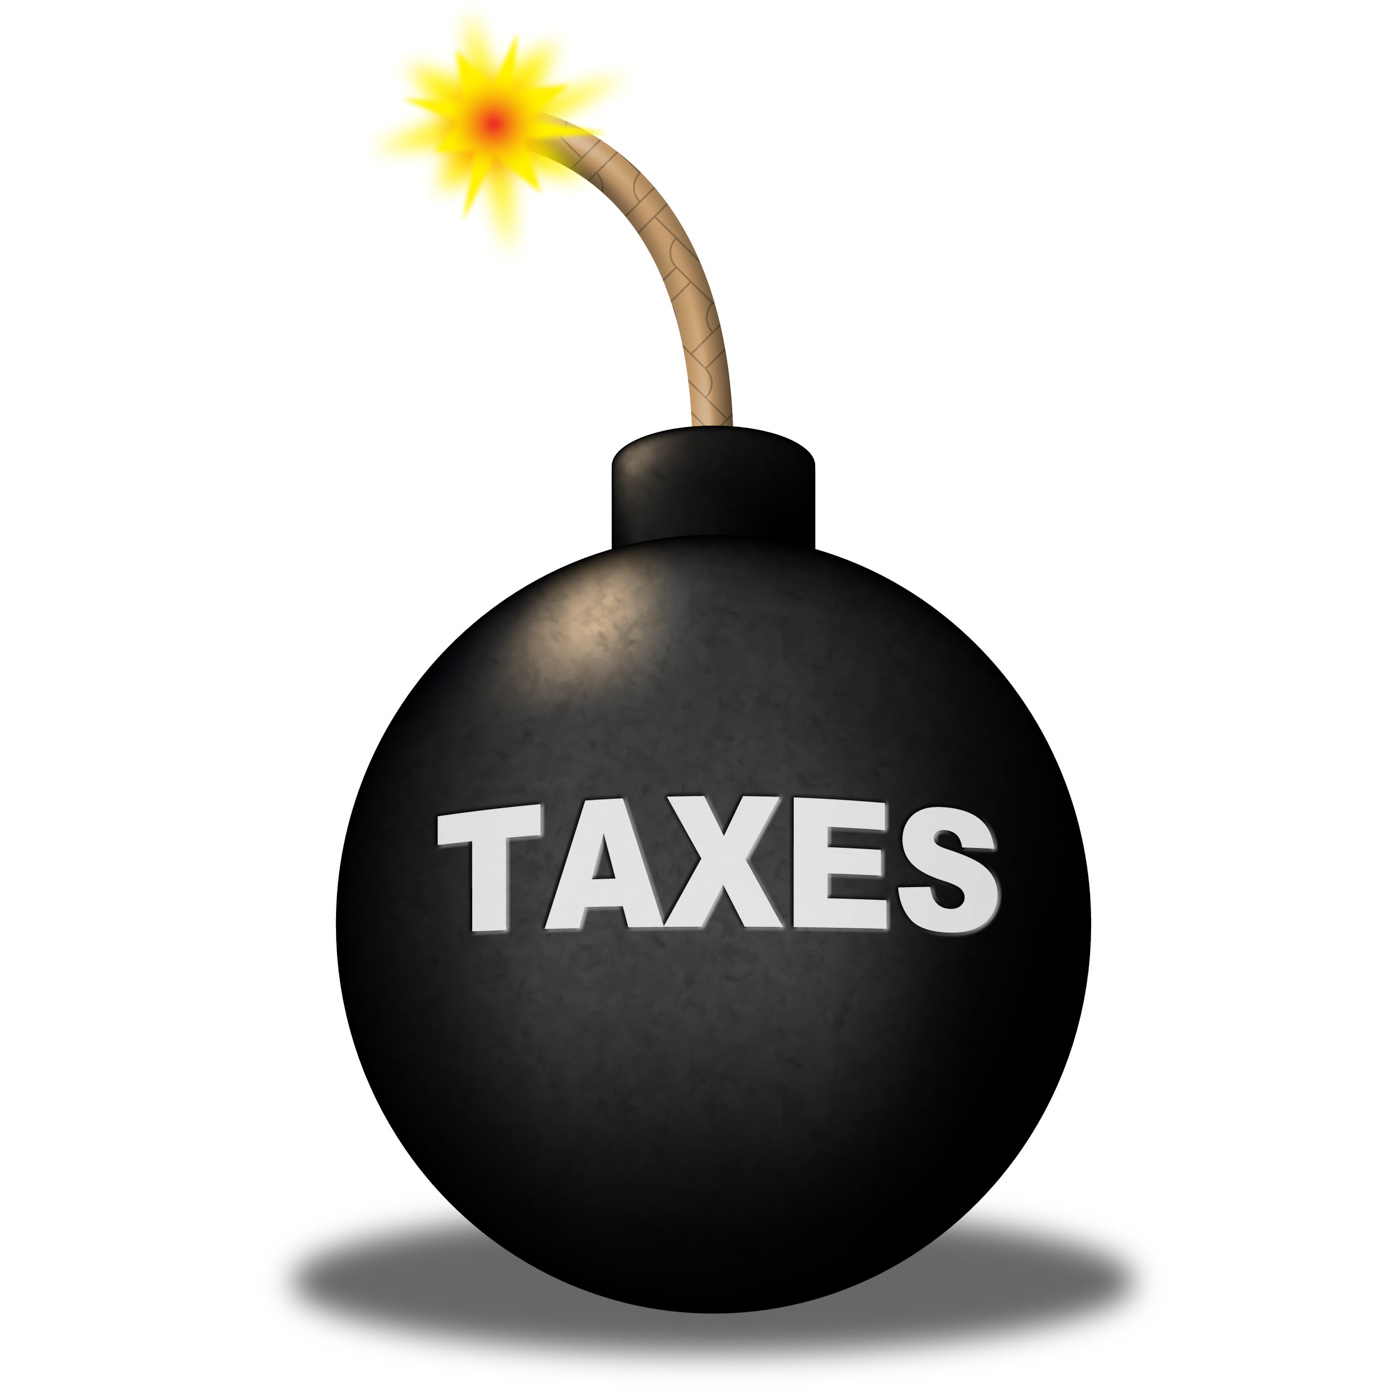 Taxes Alert Shows Duty Safety And Taxpayer, Advisory, Incometax, Taxpayer, Taxes, HQ Photo